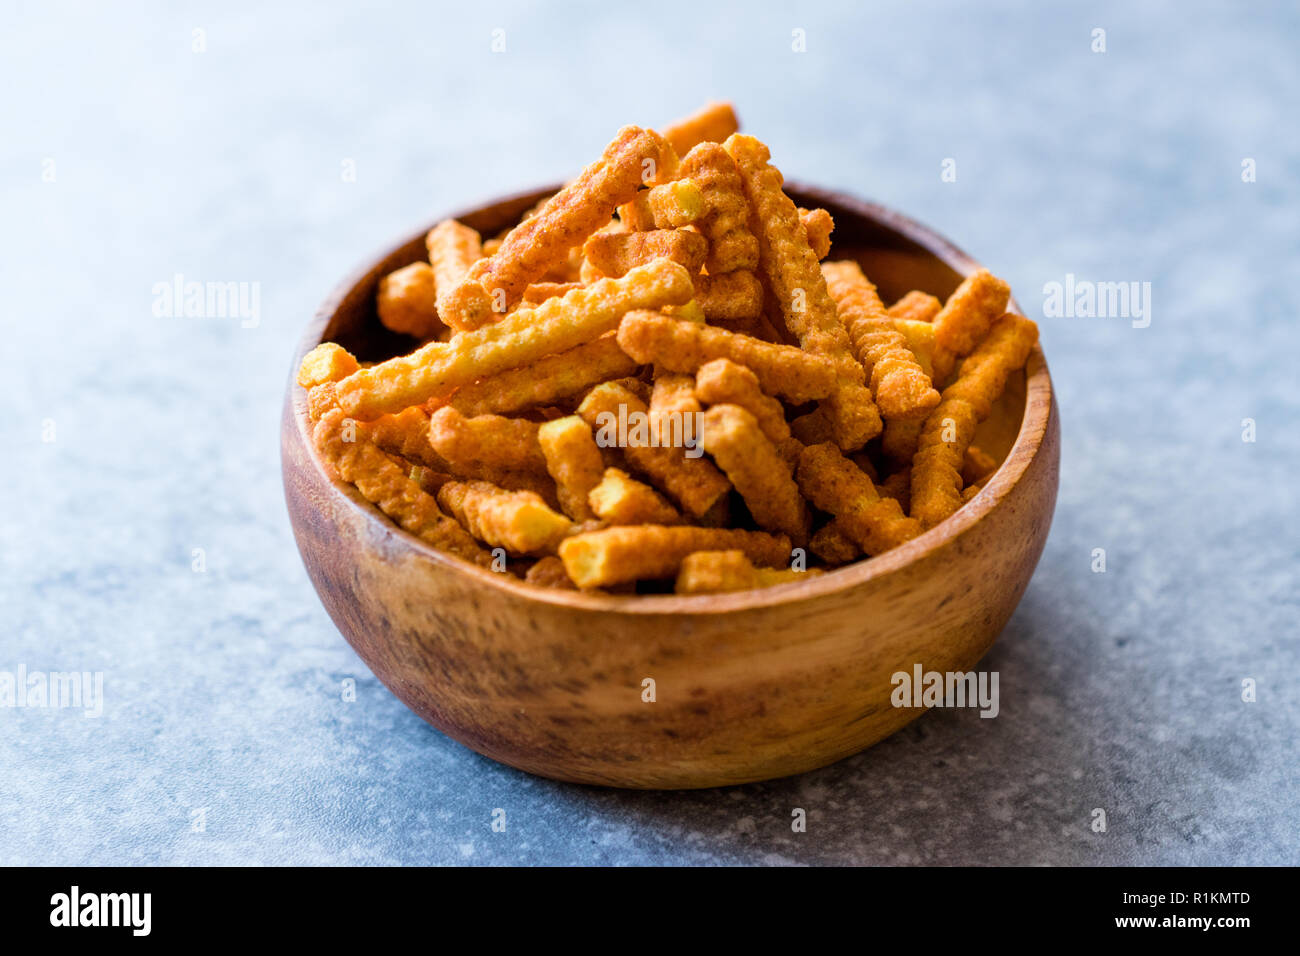 Orange Cheese Flavored Corn Snacks in Stick Shape / Roasted Chips or Salty Crackers in Wooden Bowl. Organic Roasted Snacks. - Stock Image